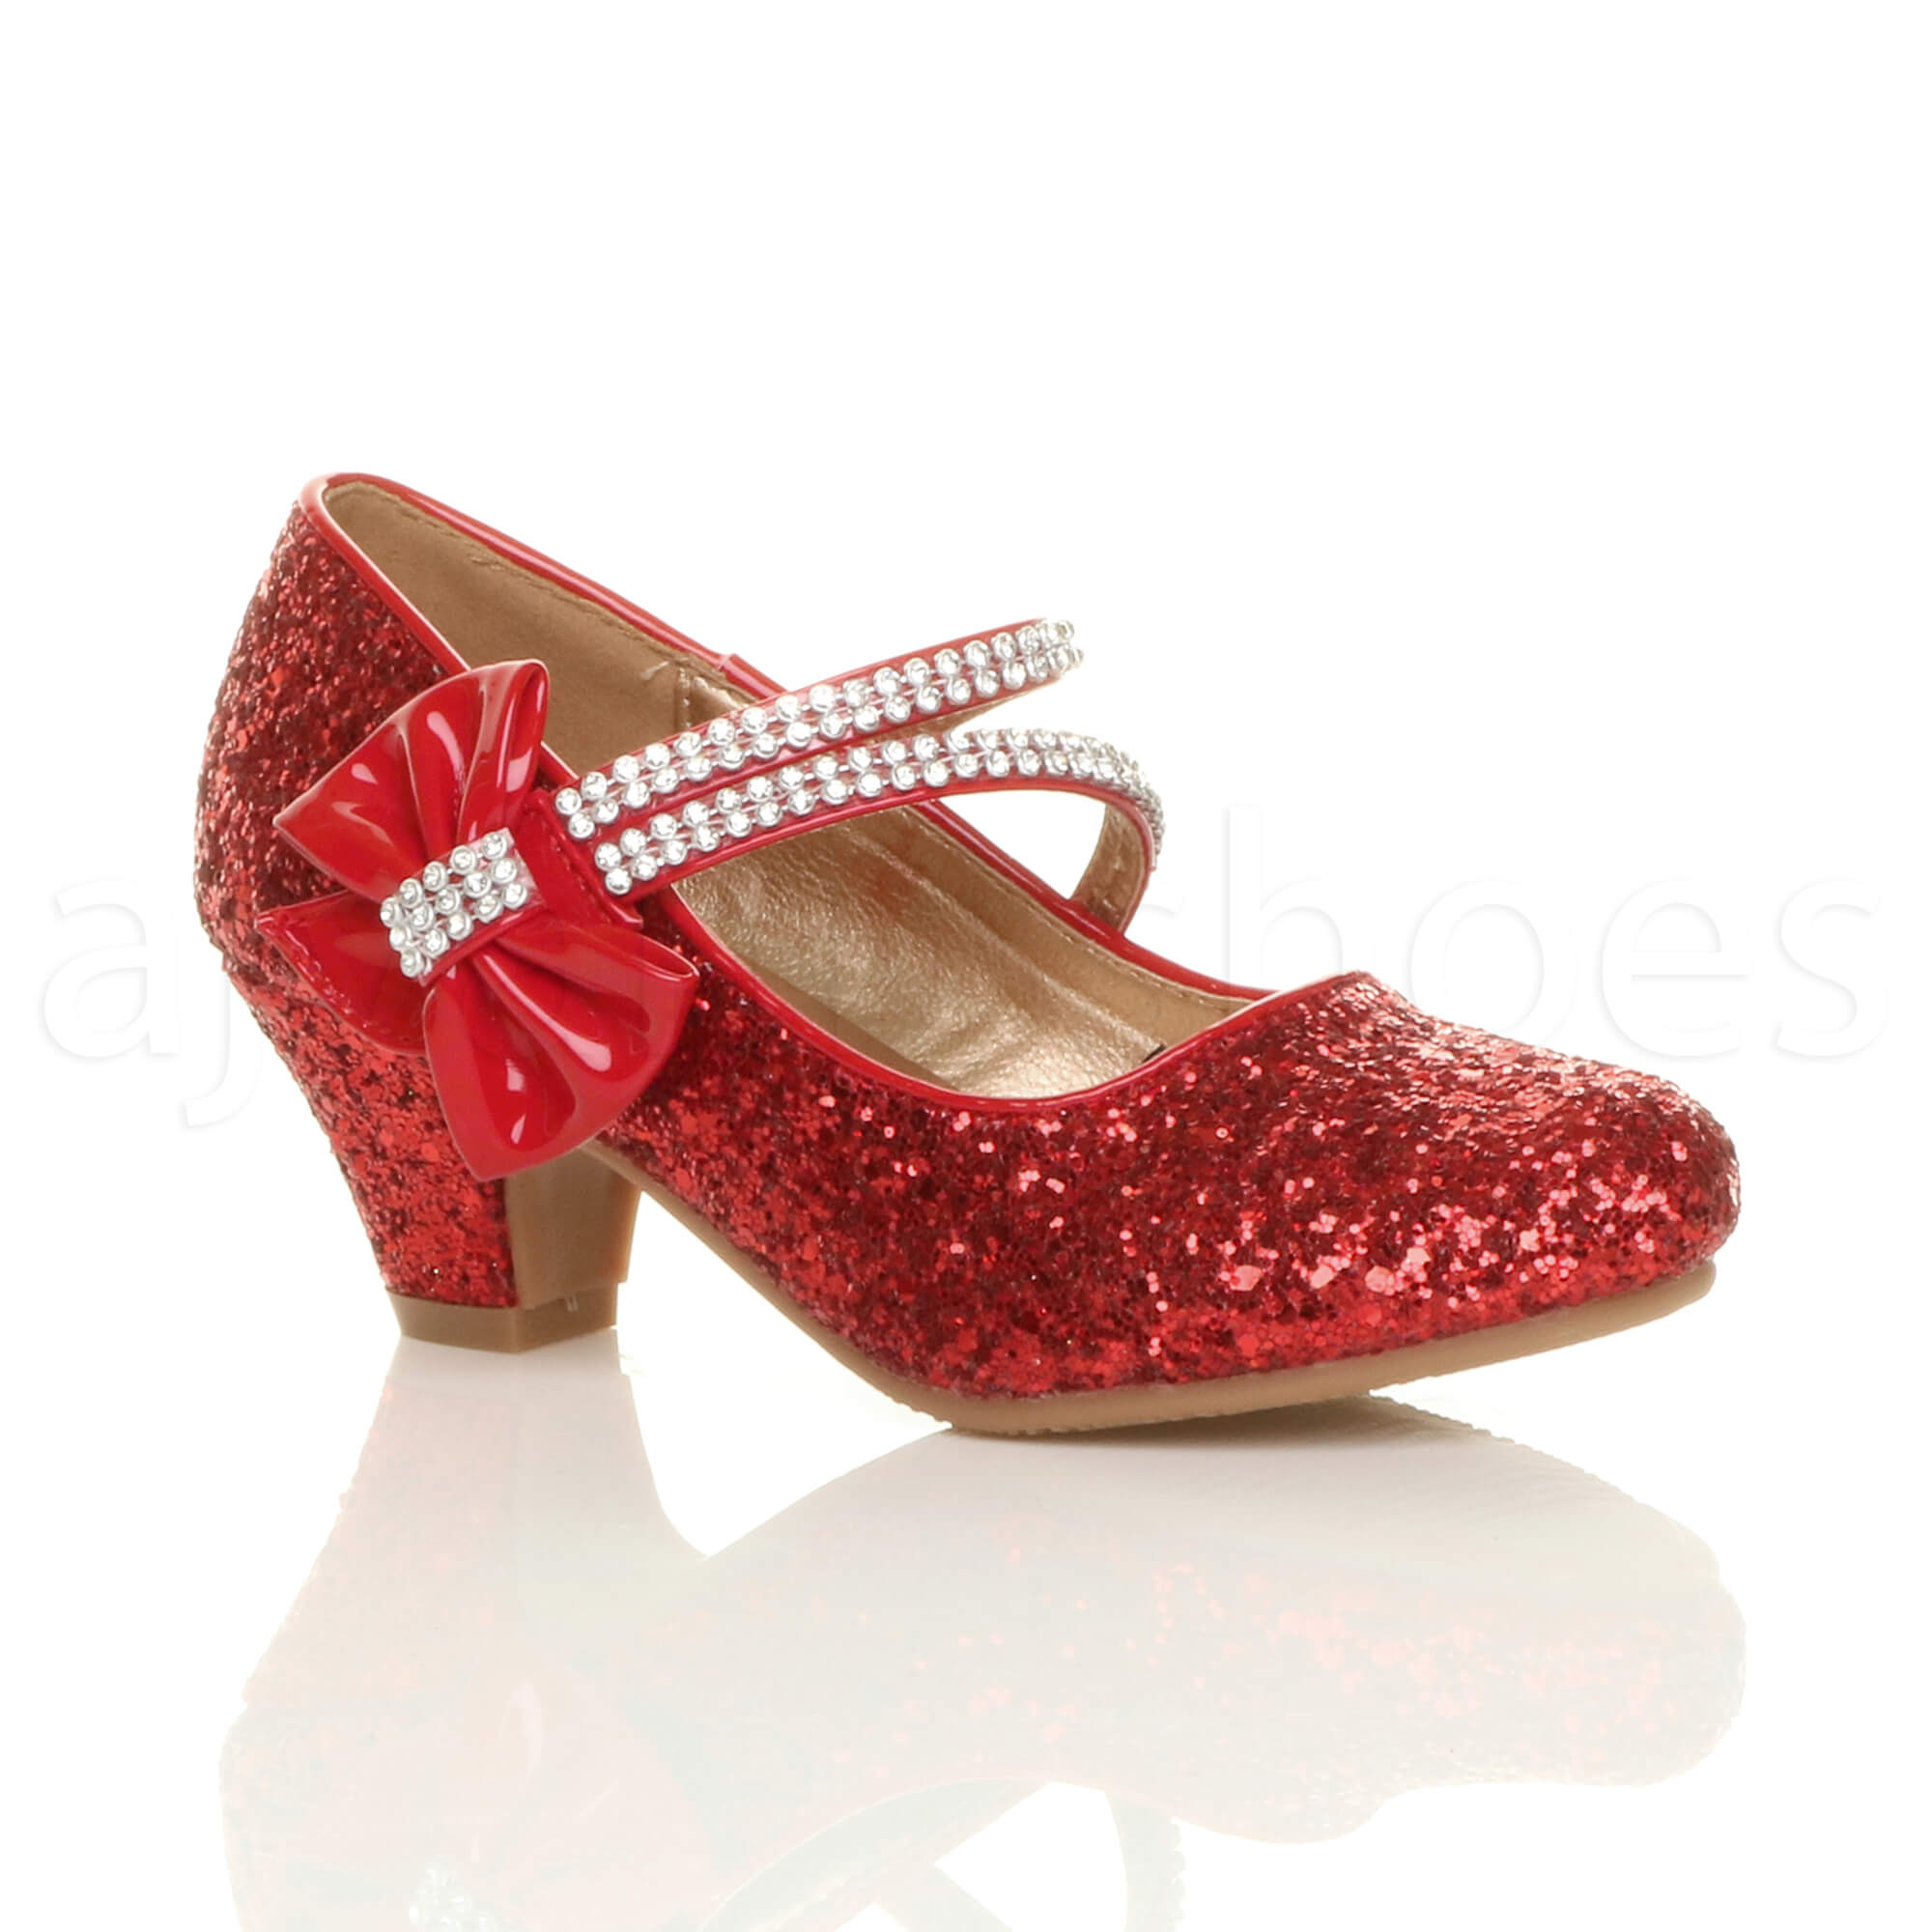 childrens wedding shoes photo - 1